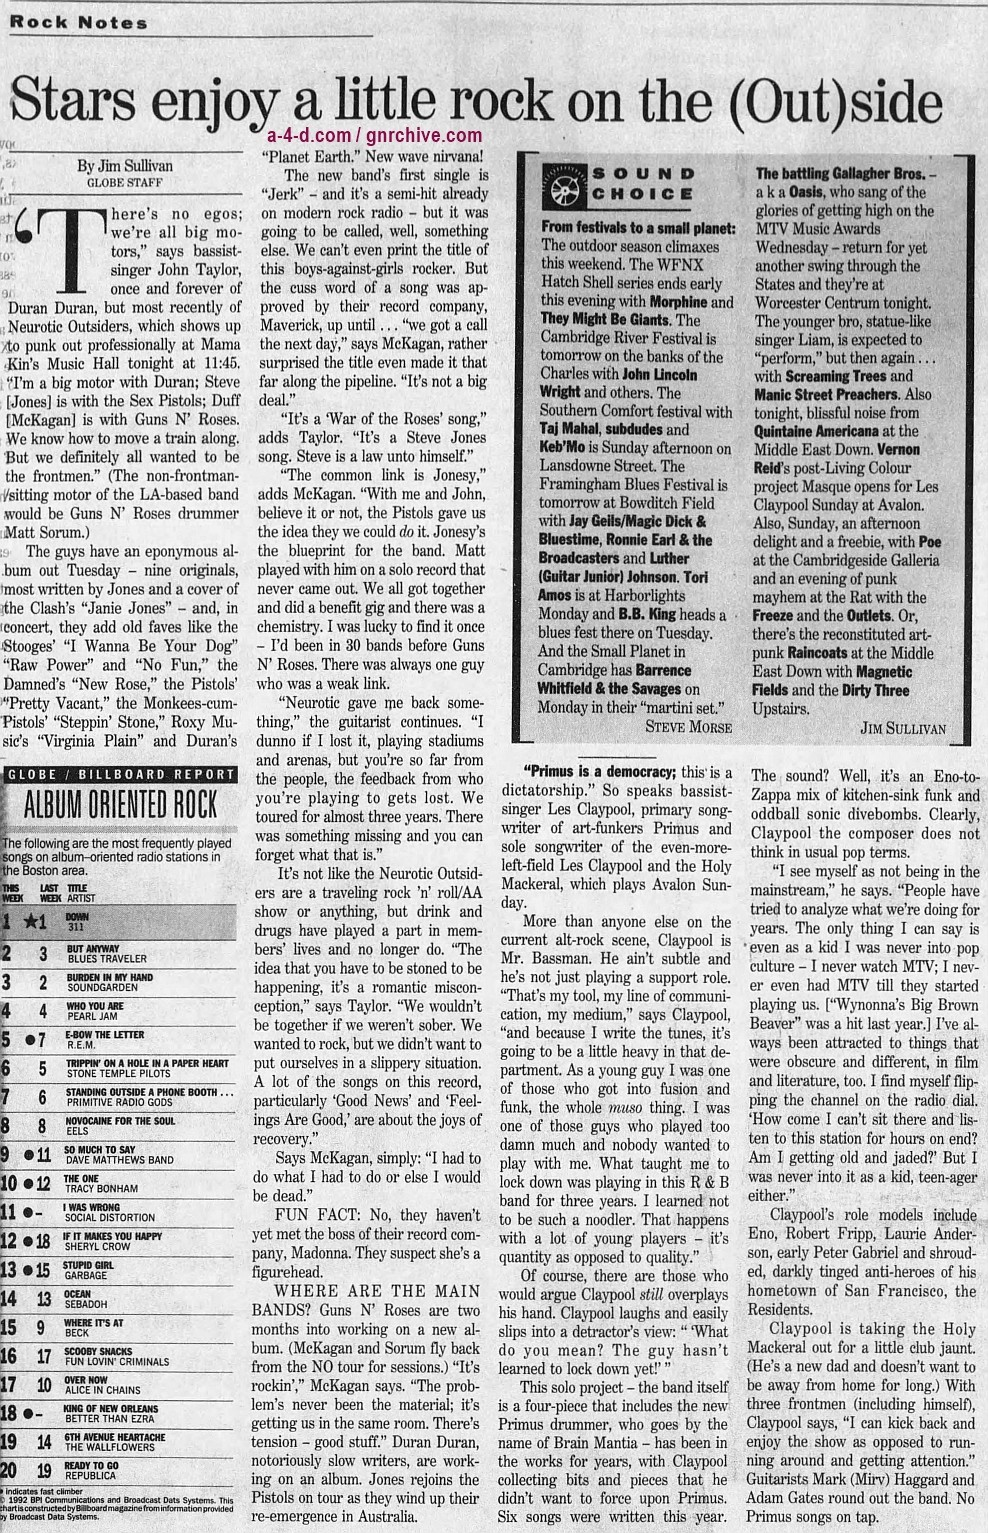 1996.09.06 - The Boston Globe - Stars enjoy a little rock on the (Out)side (Duff) 1996_029